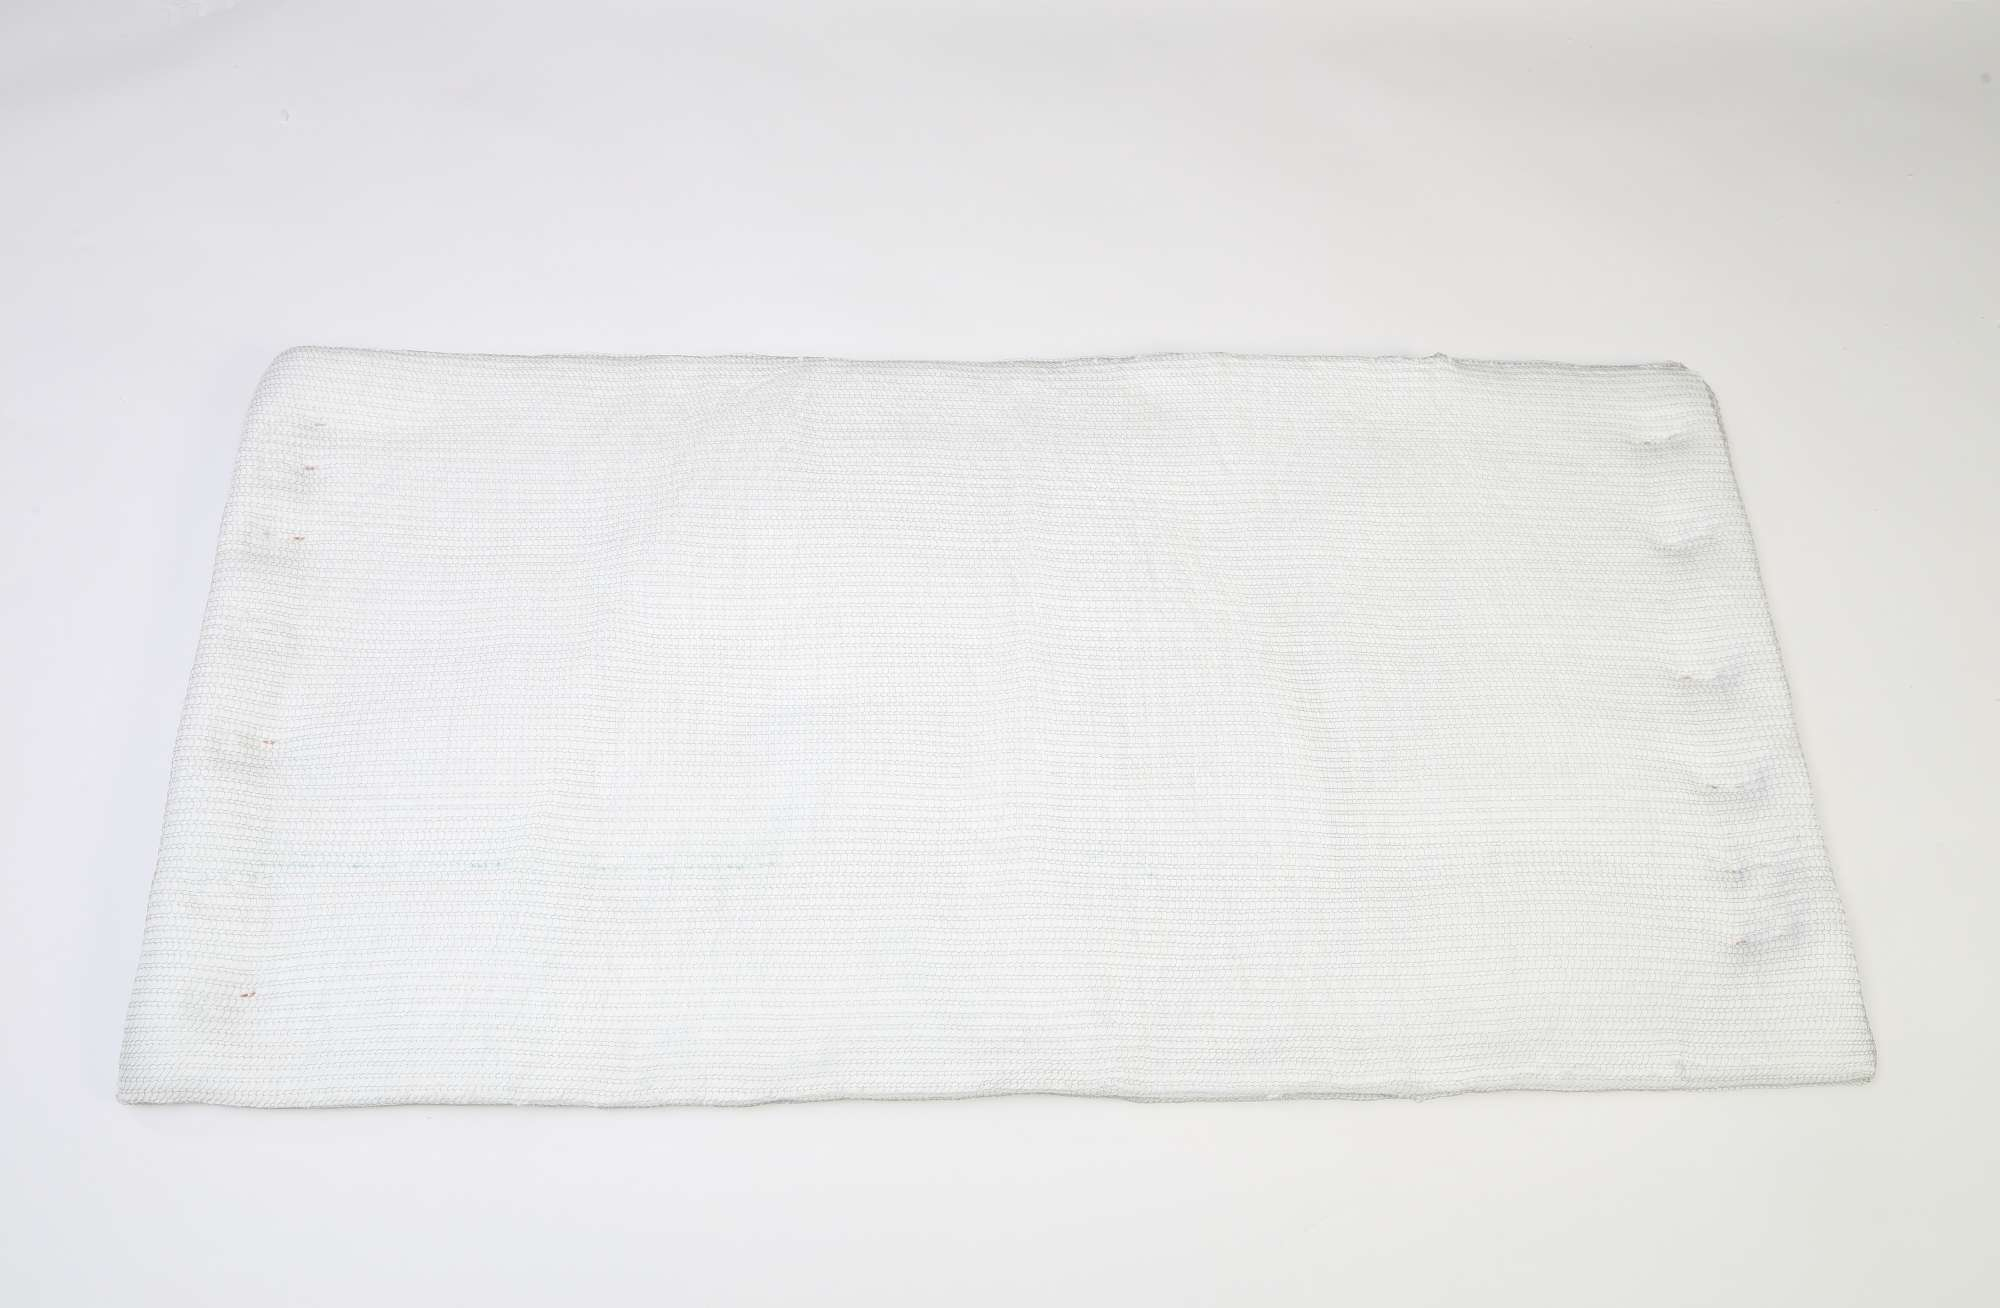 Image of Ceramic fibre insulation blanket 96kg/m³ in stainless steel mesh 25x600x1200mm